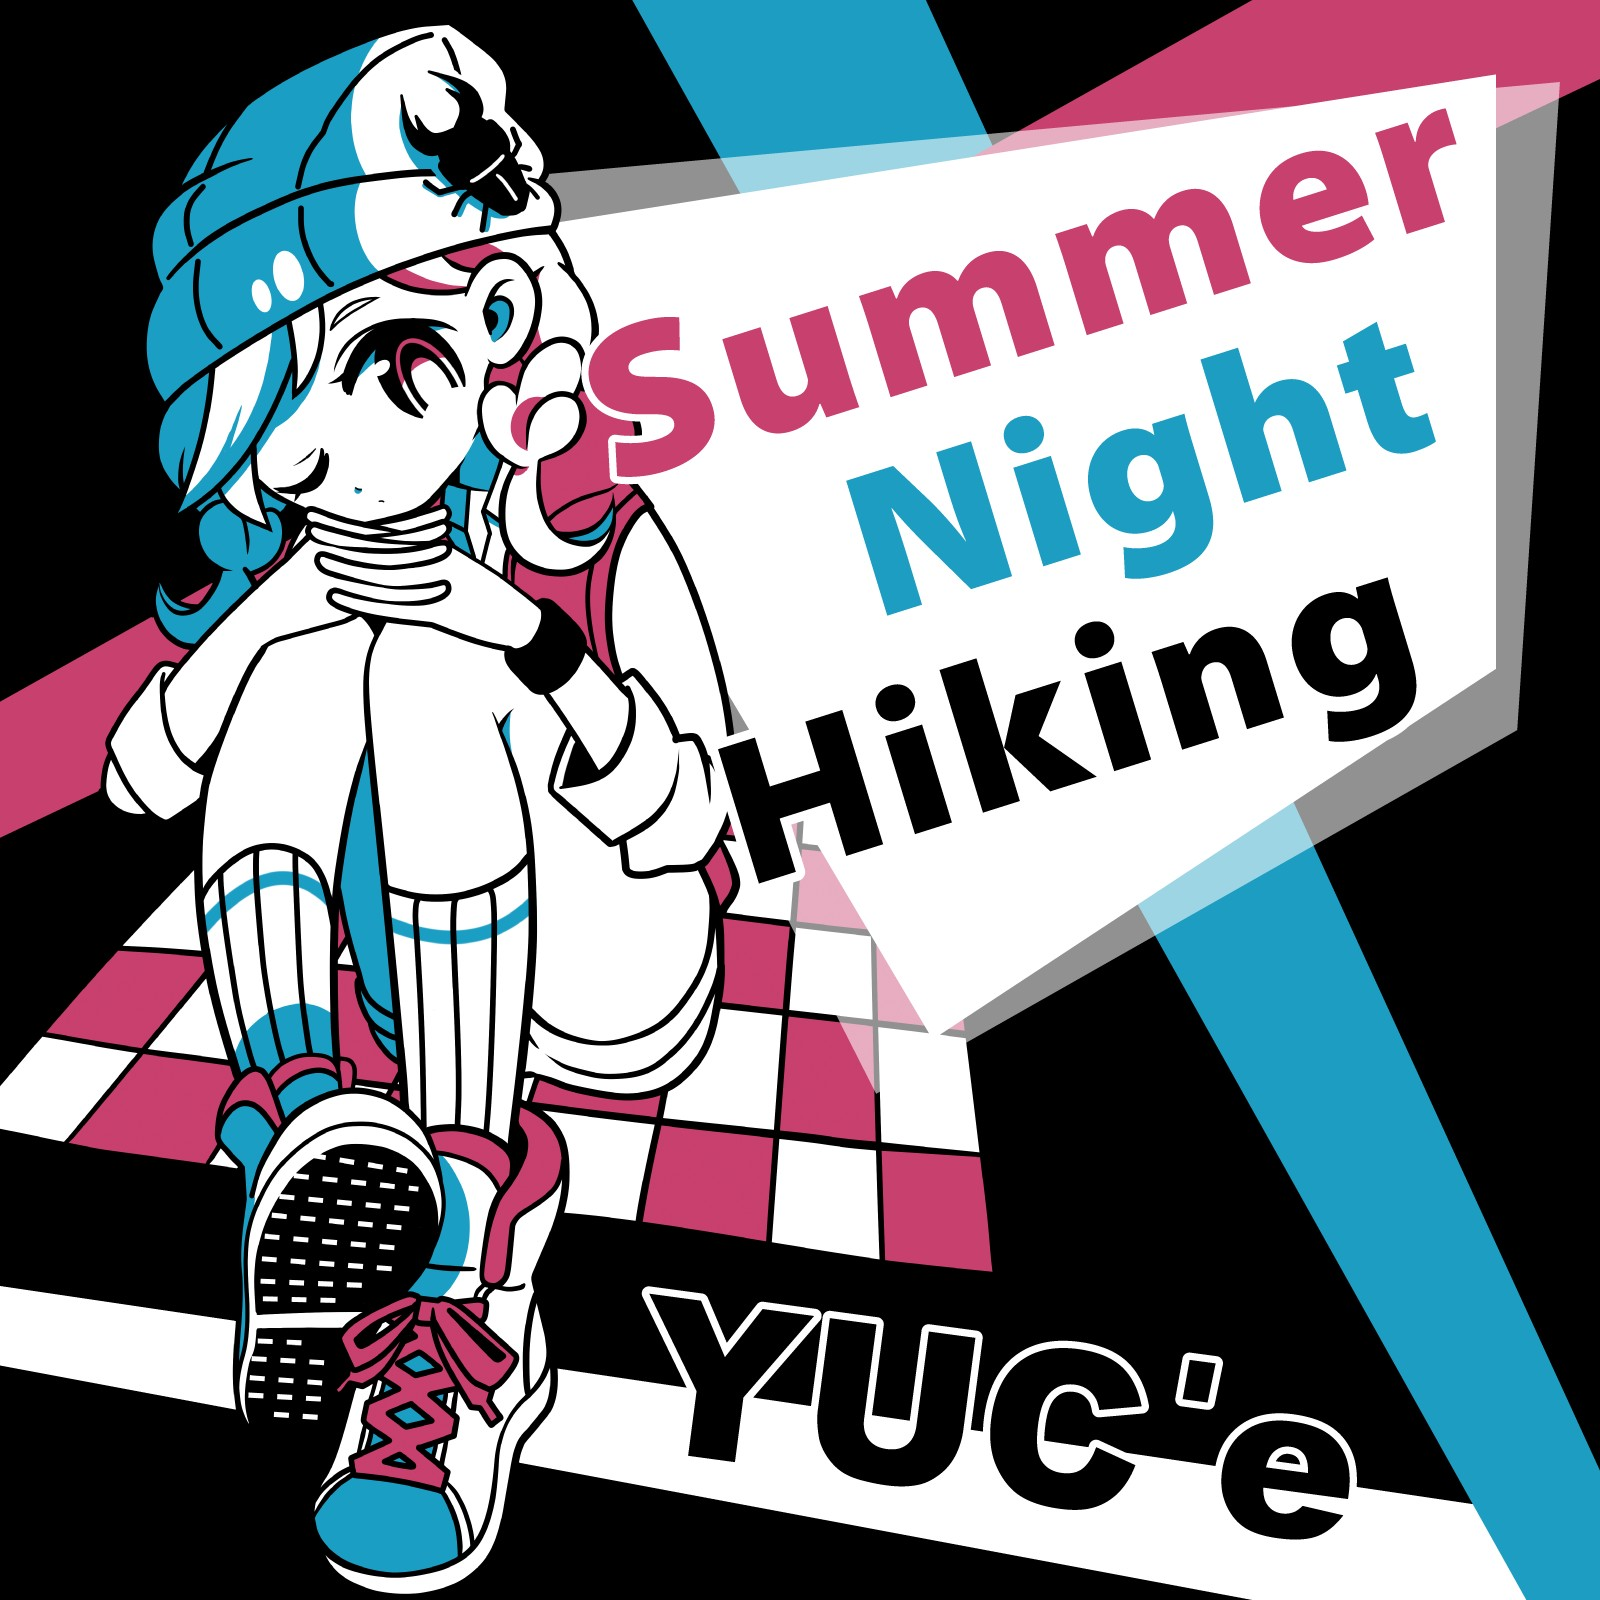 YUC'e (ゆーしえ) – Summer Night Hiking [FLAC + MP3 320 / WEB] [2018.08.10]